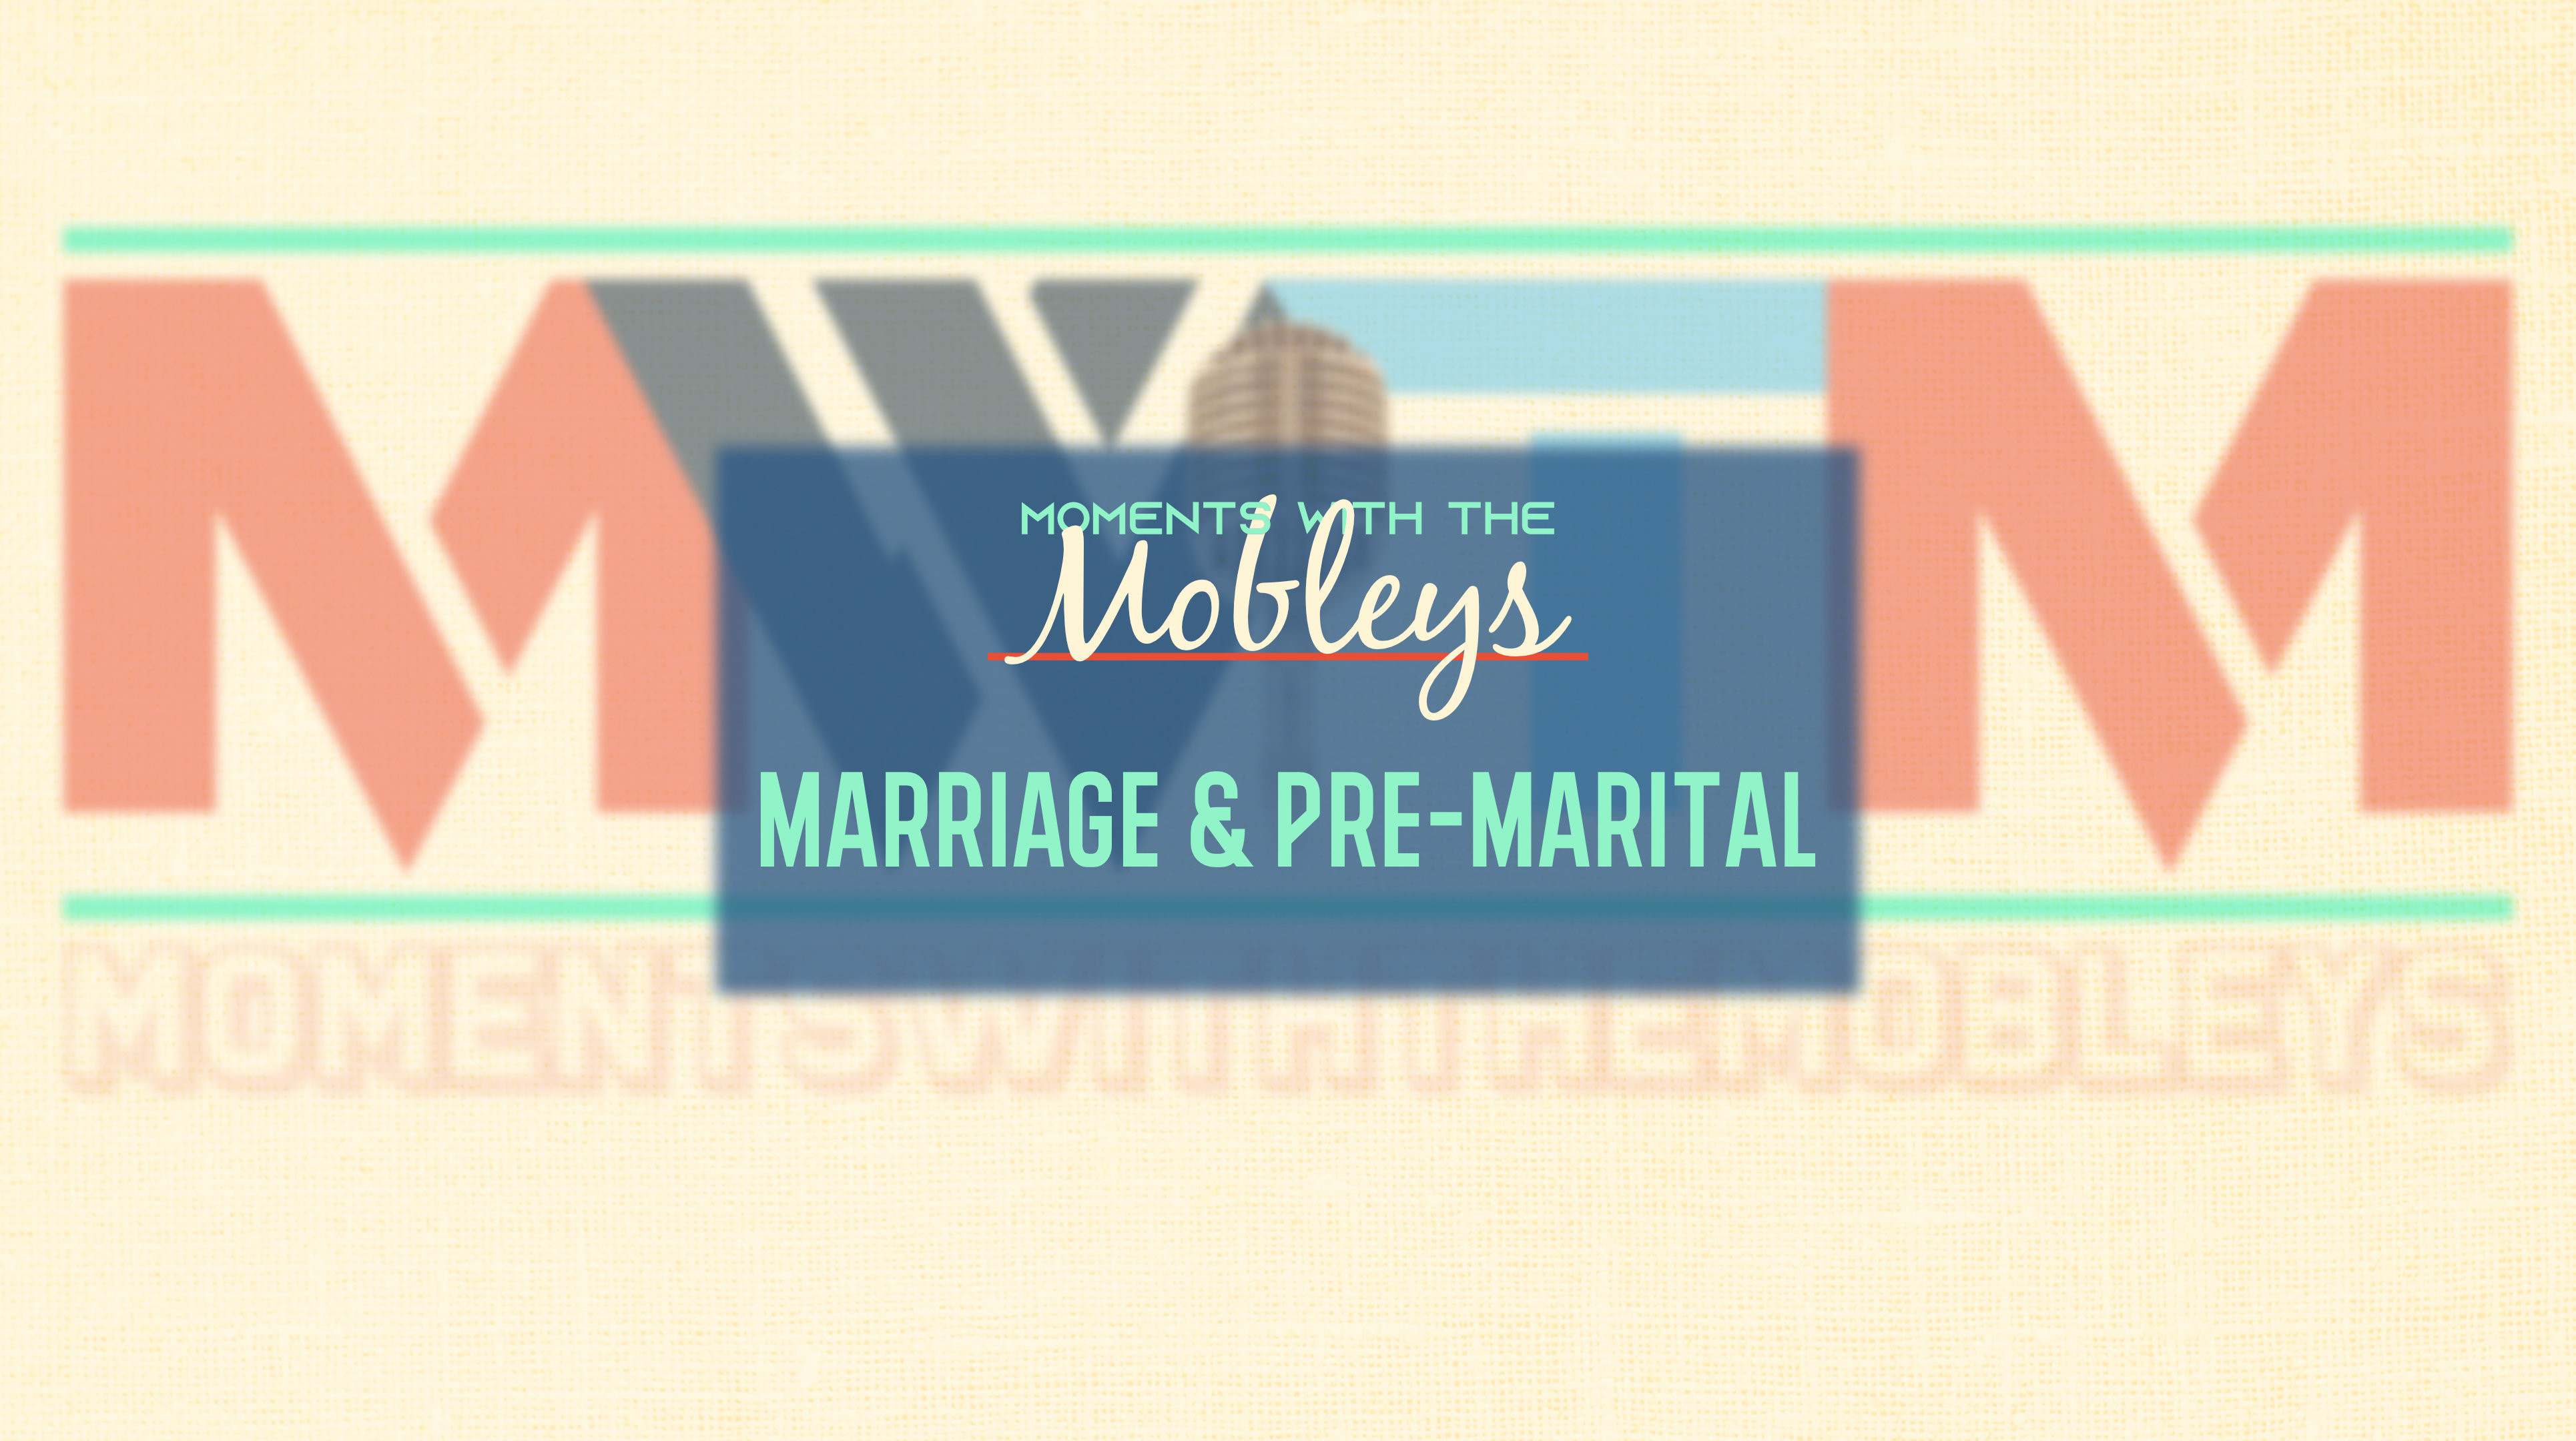 Marriage & Pre-Marital Counseling